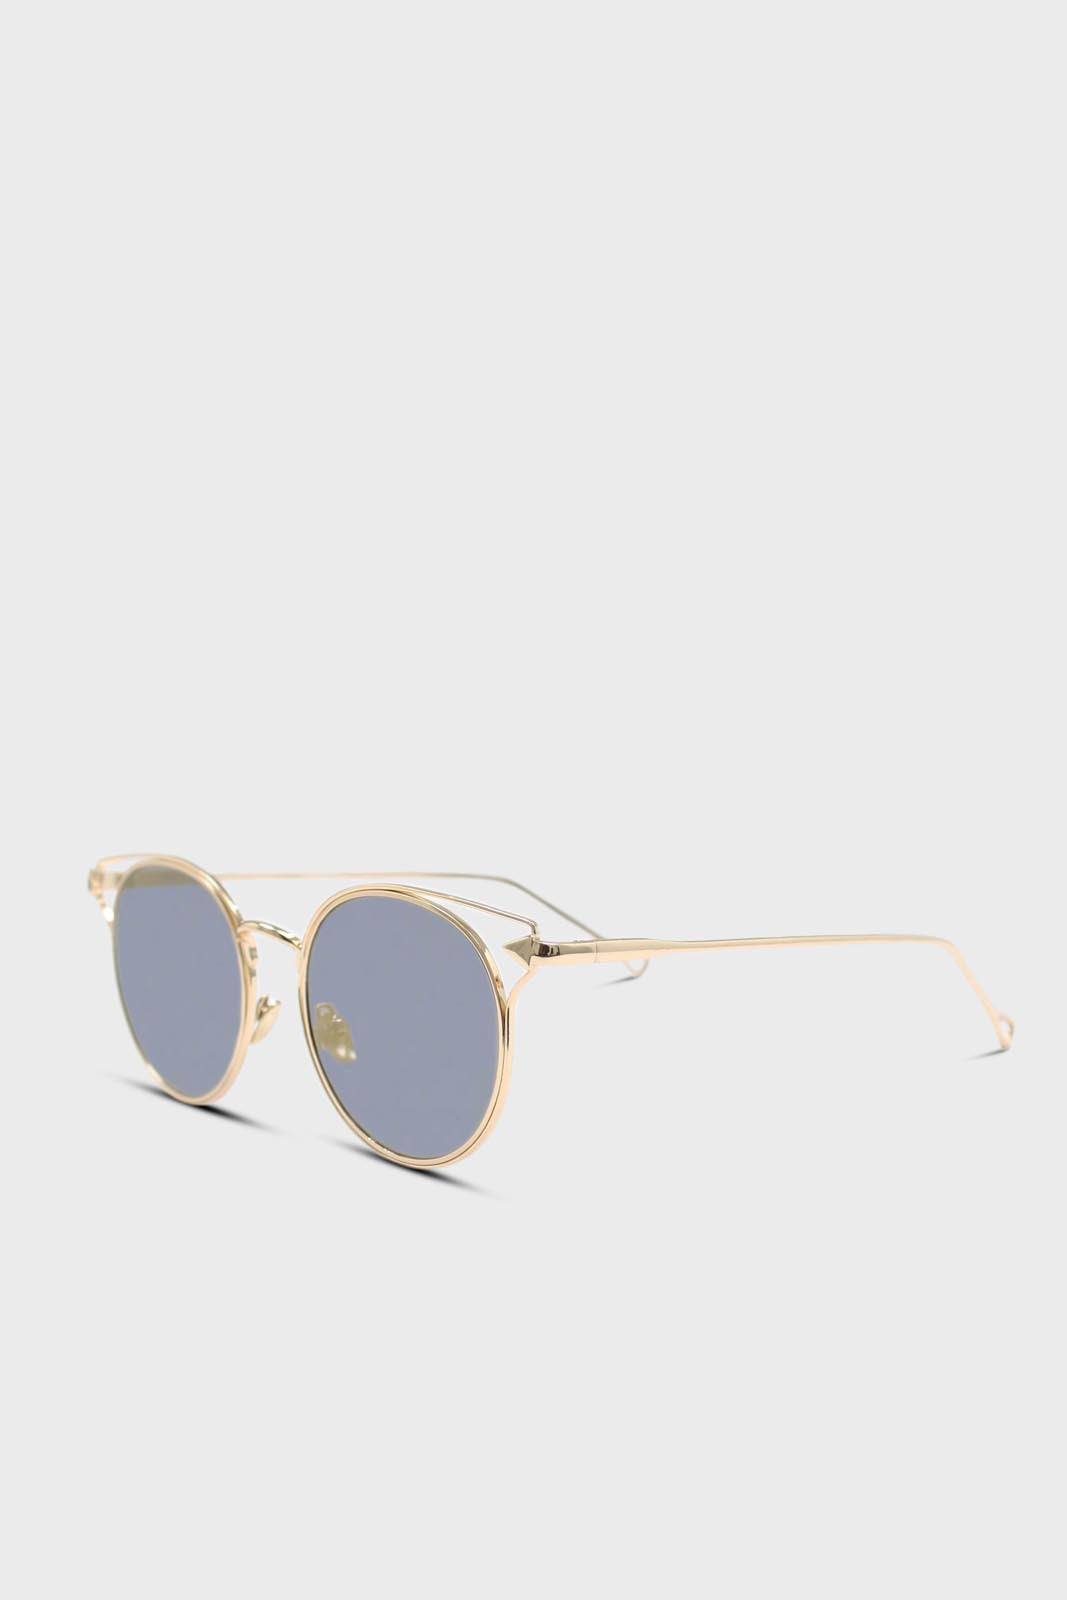 Gold wire rim peek side cateye sunglasses5